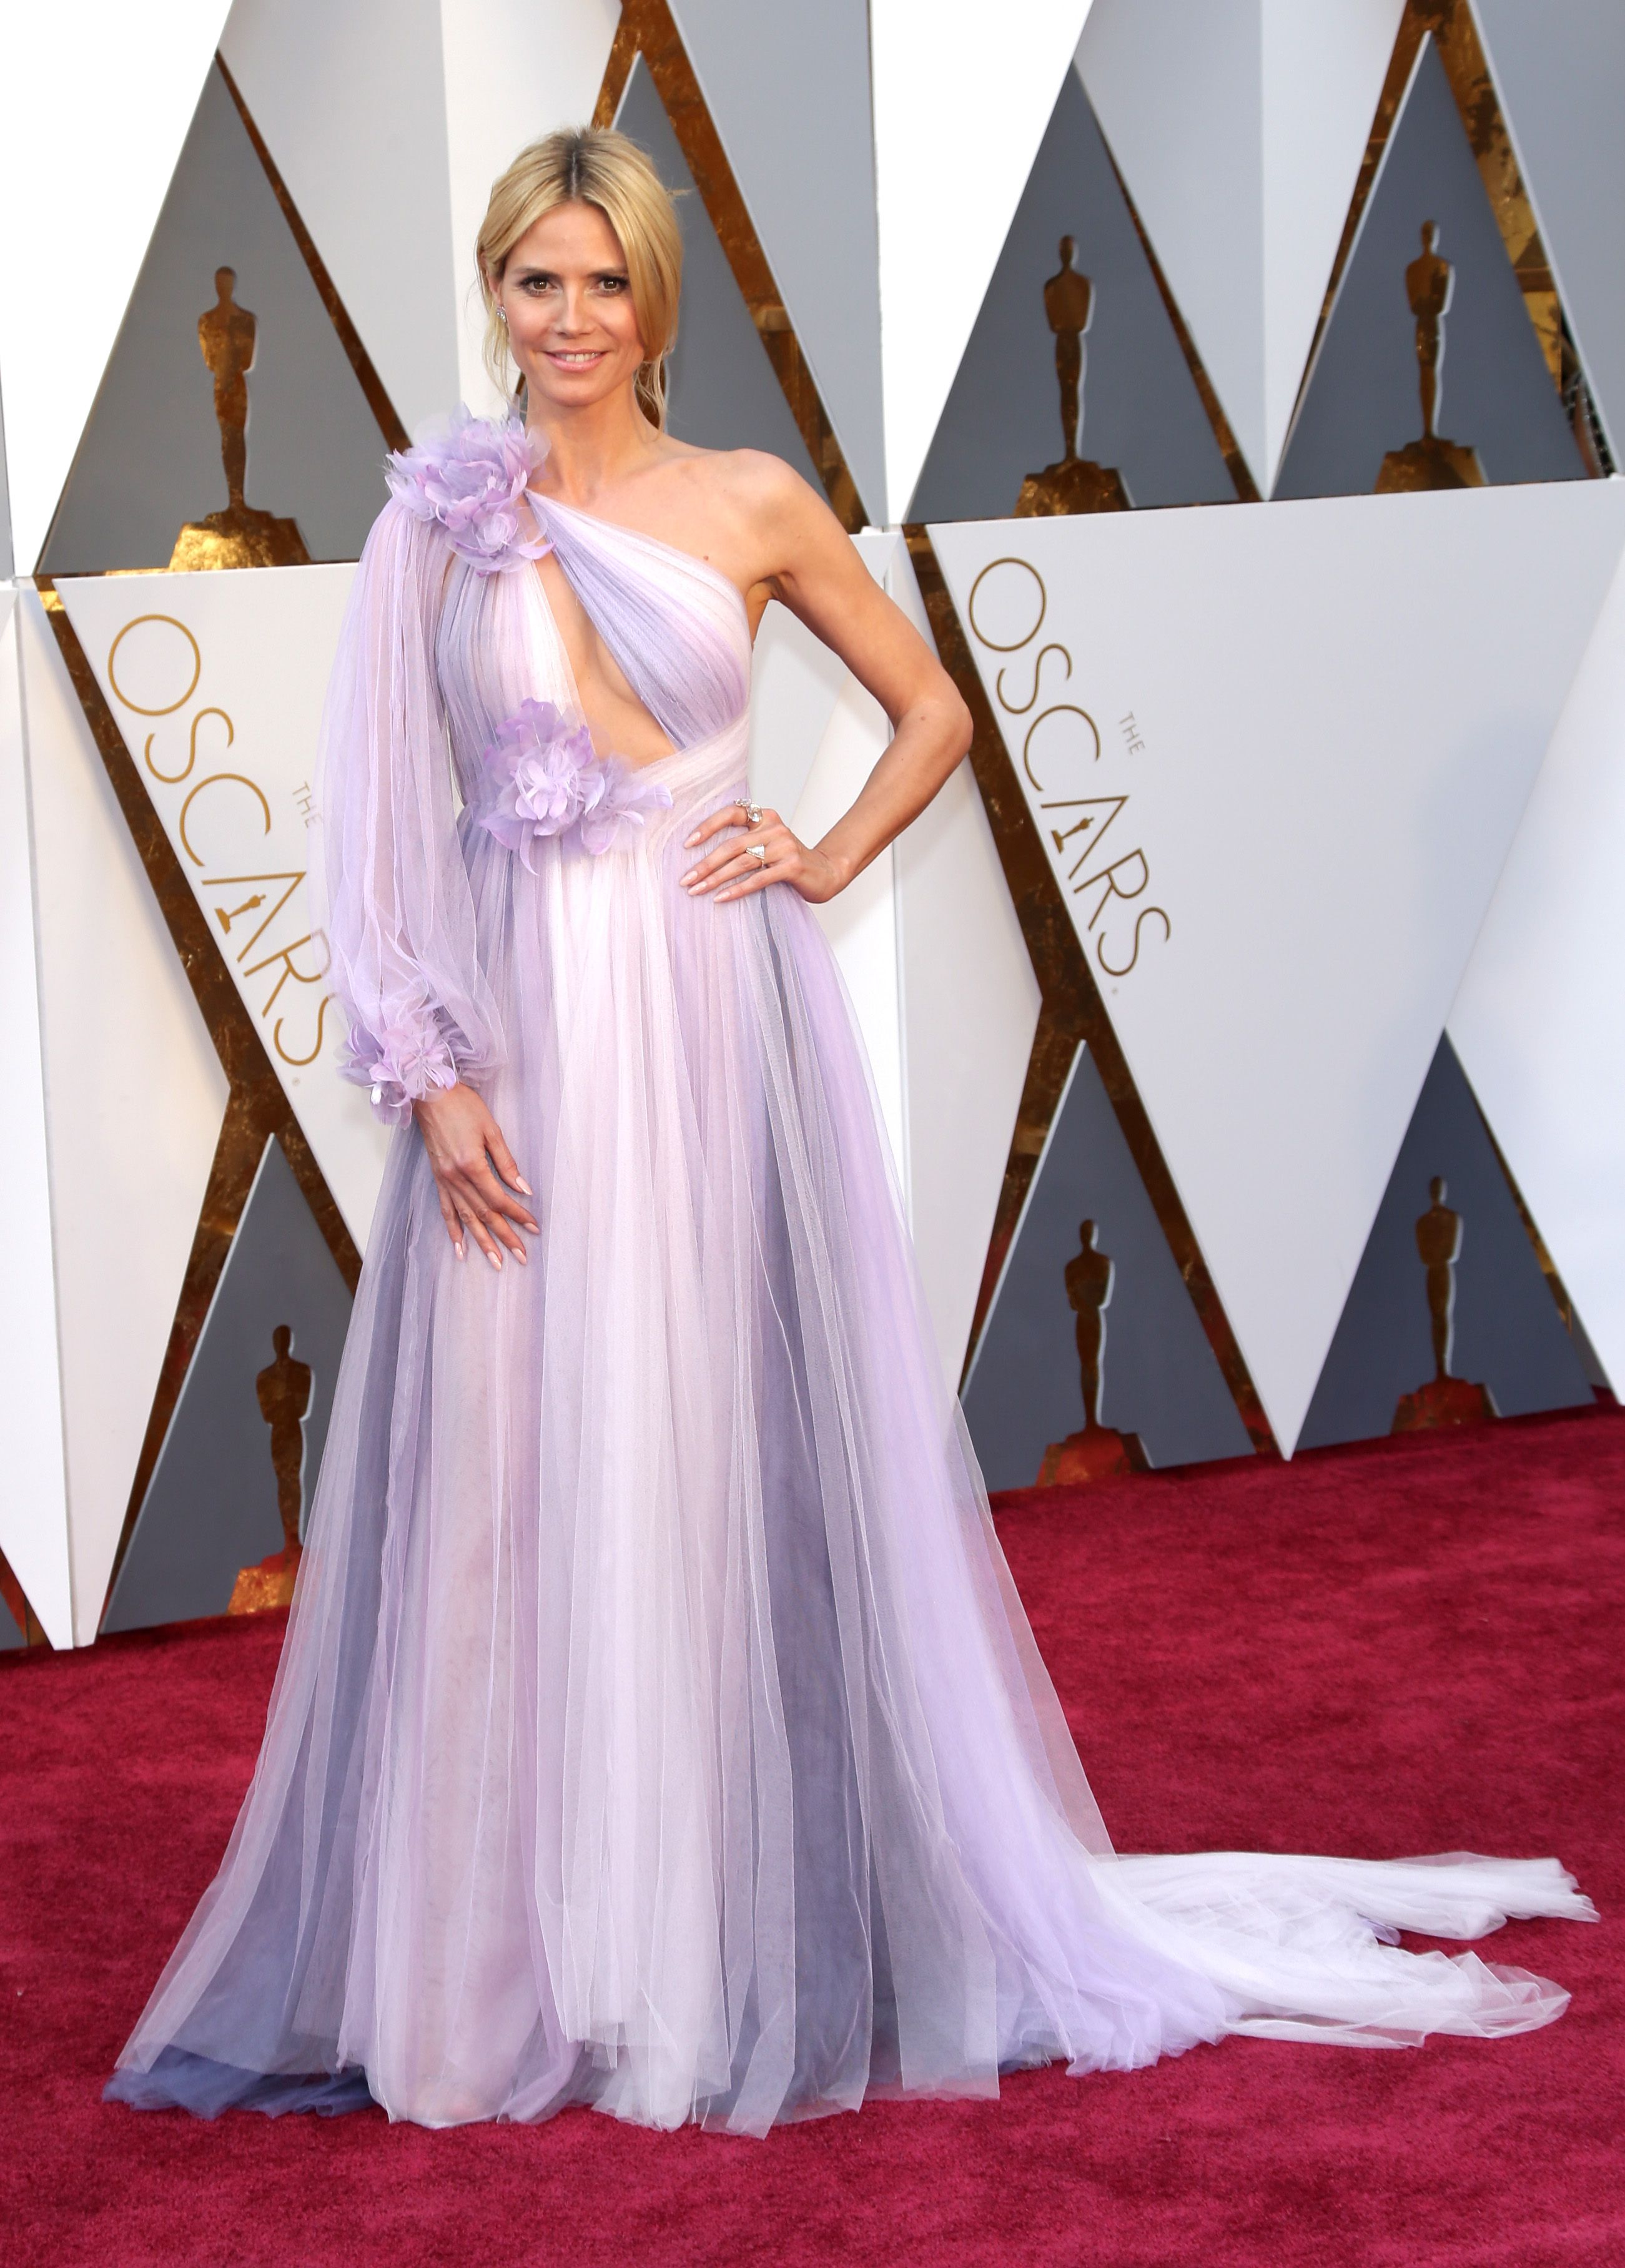 The 2016 Oscars Red Carpet: Our Best and Worst Dressed - FLARE